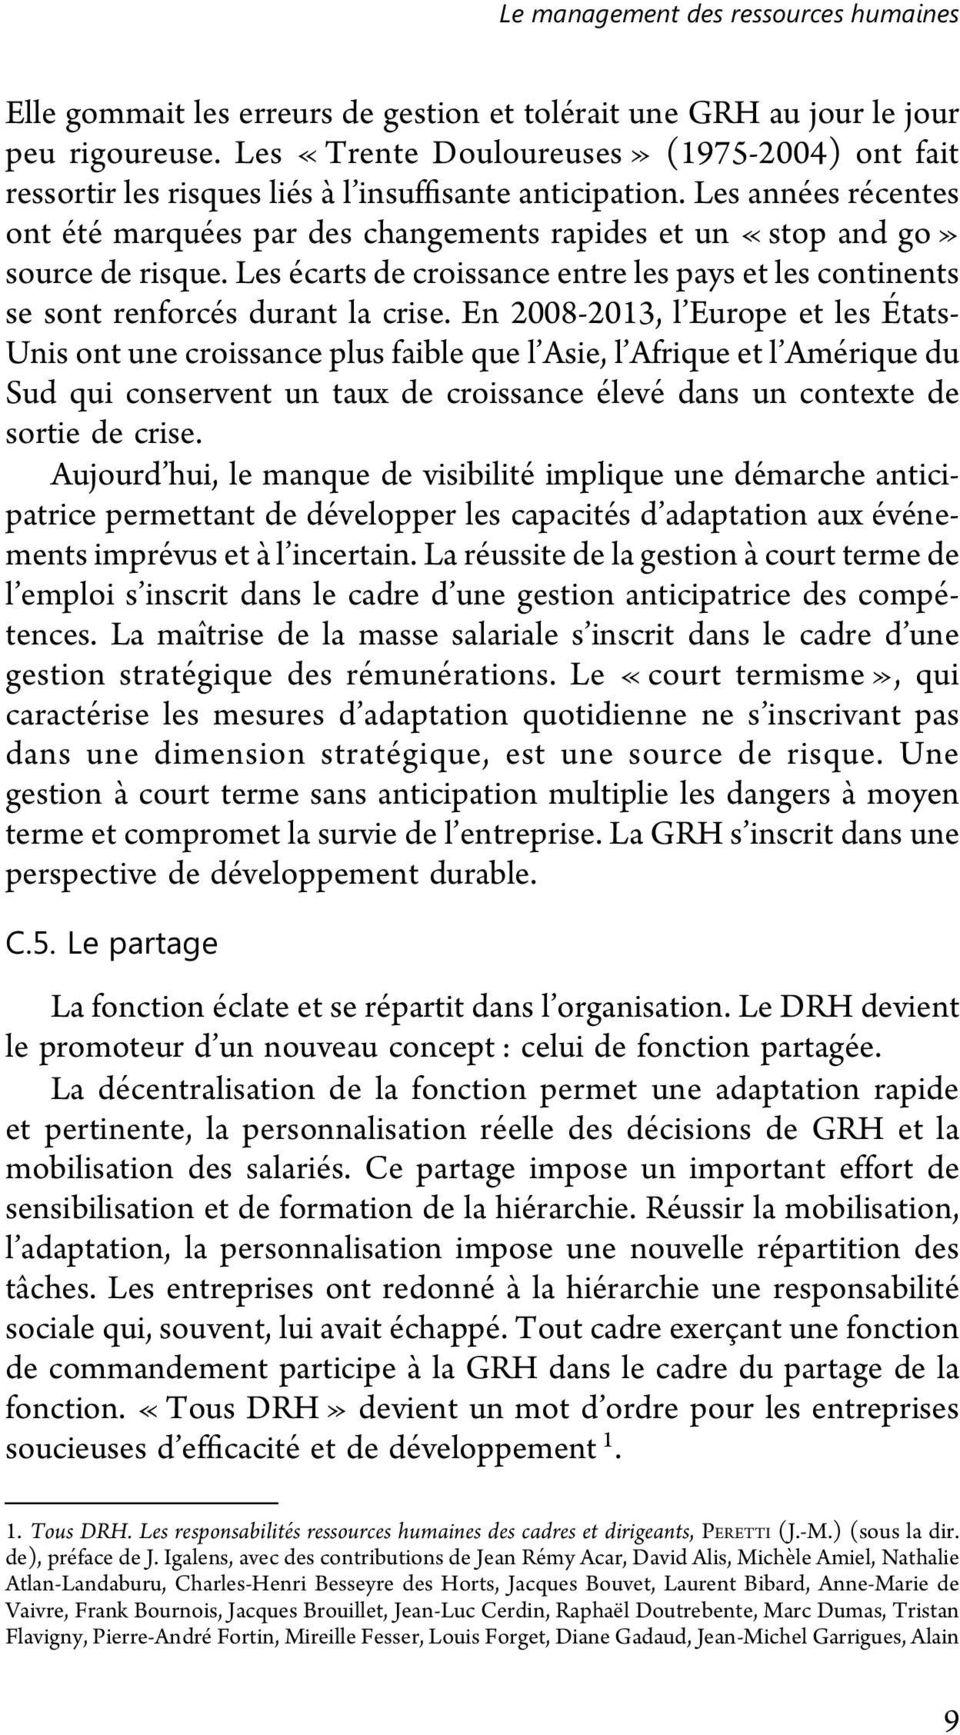 peretti jean marie ressources humaines